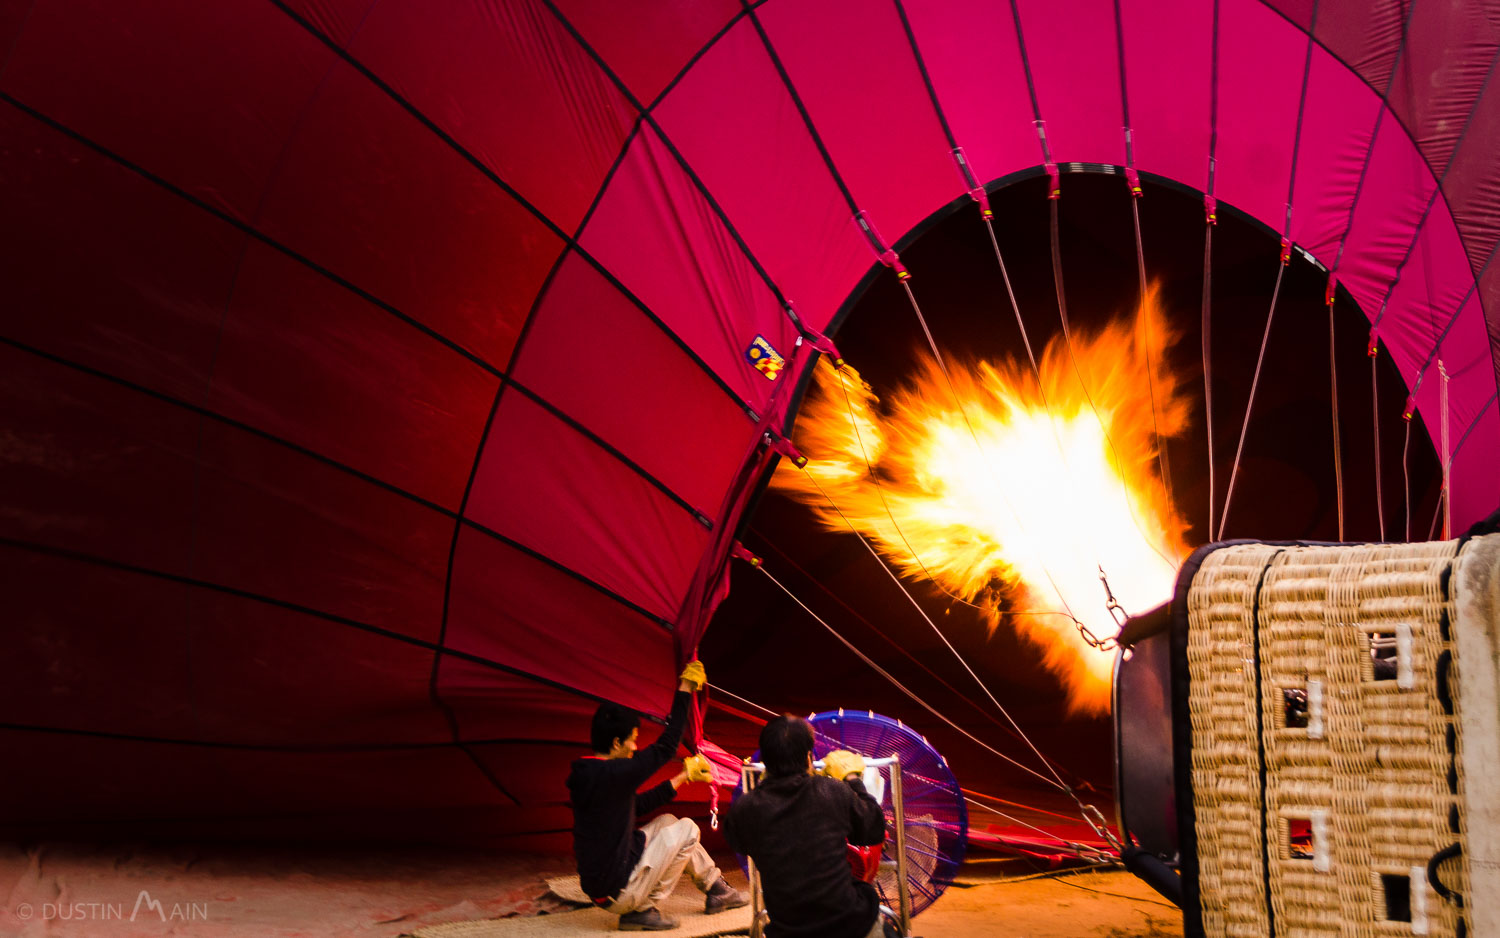 Burners are on full blast as the staff push air into the balloon in Bagan. © Dustin Main 2013